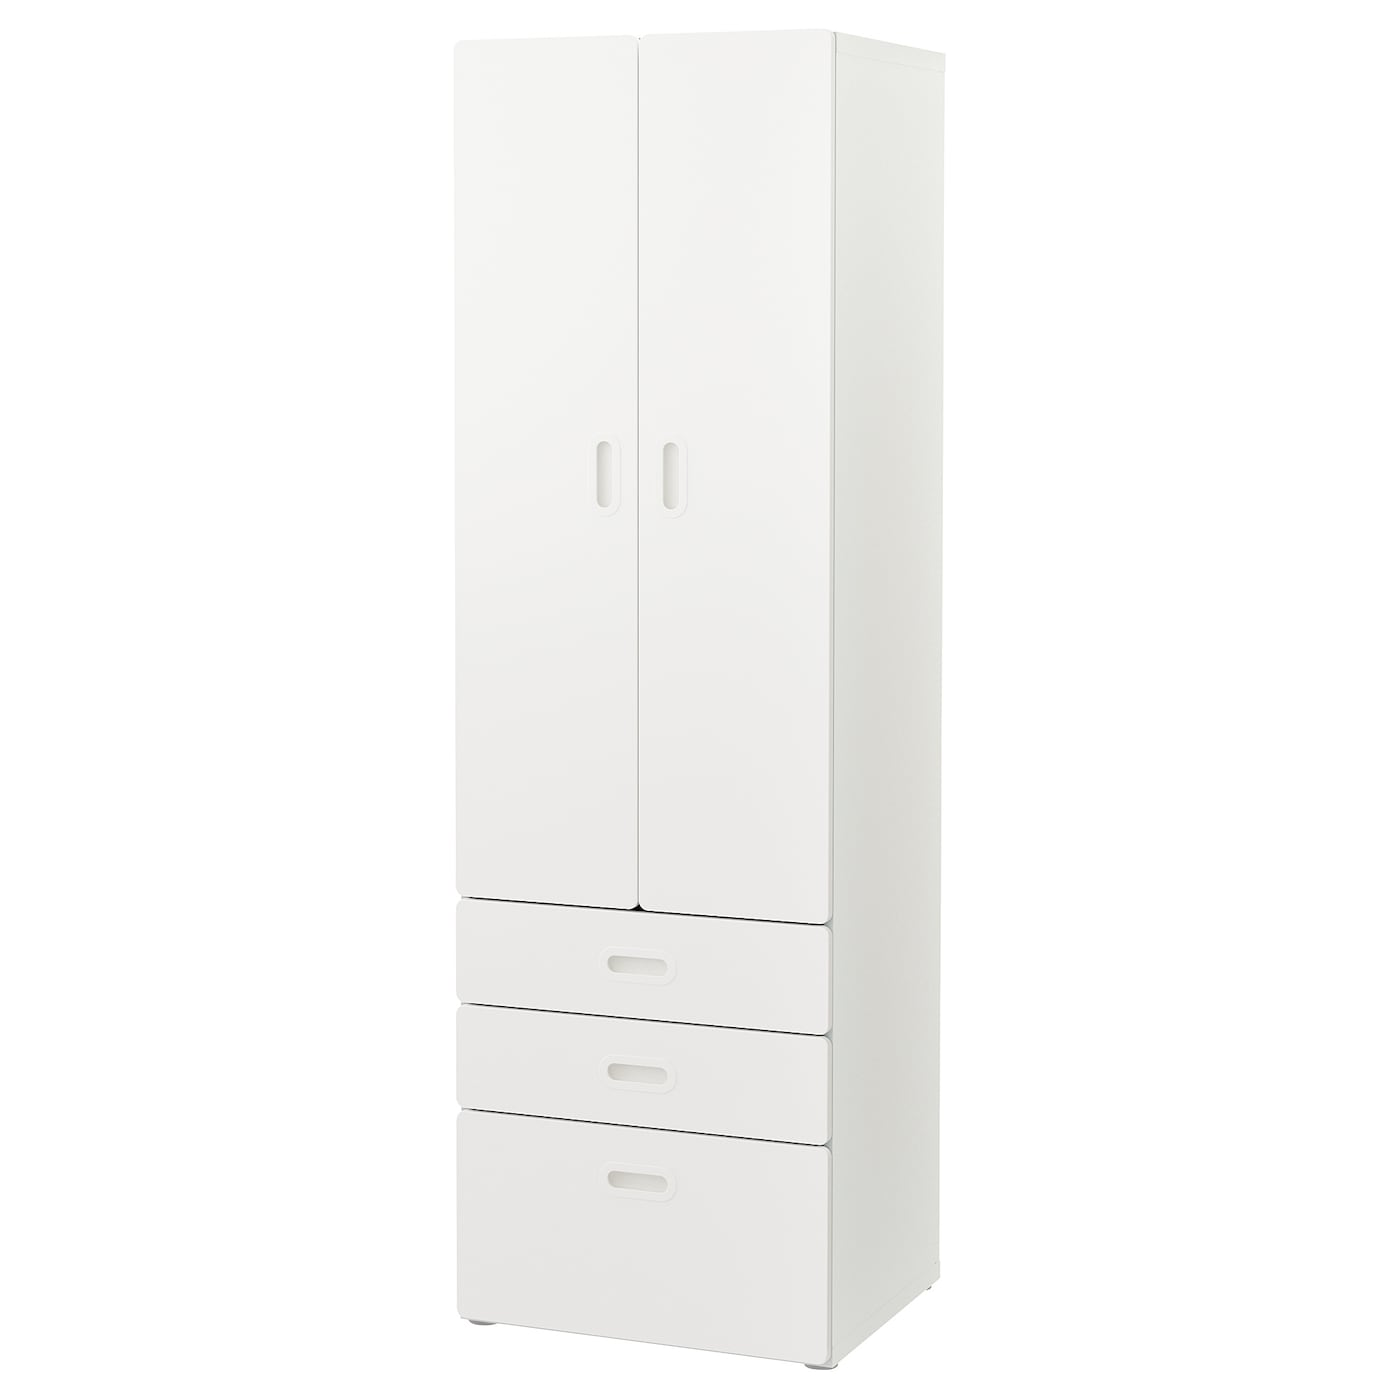 IKEA FRITIDS/STUVA wardrobe Stands steady also on uneven floors since adjustable feet are included.